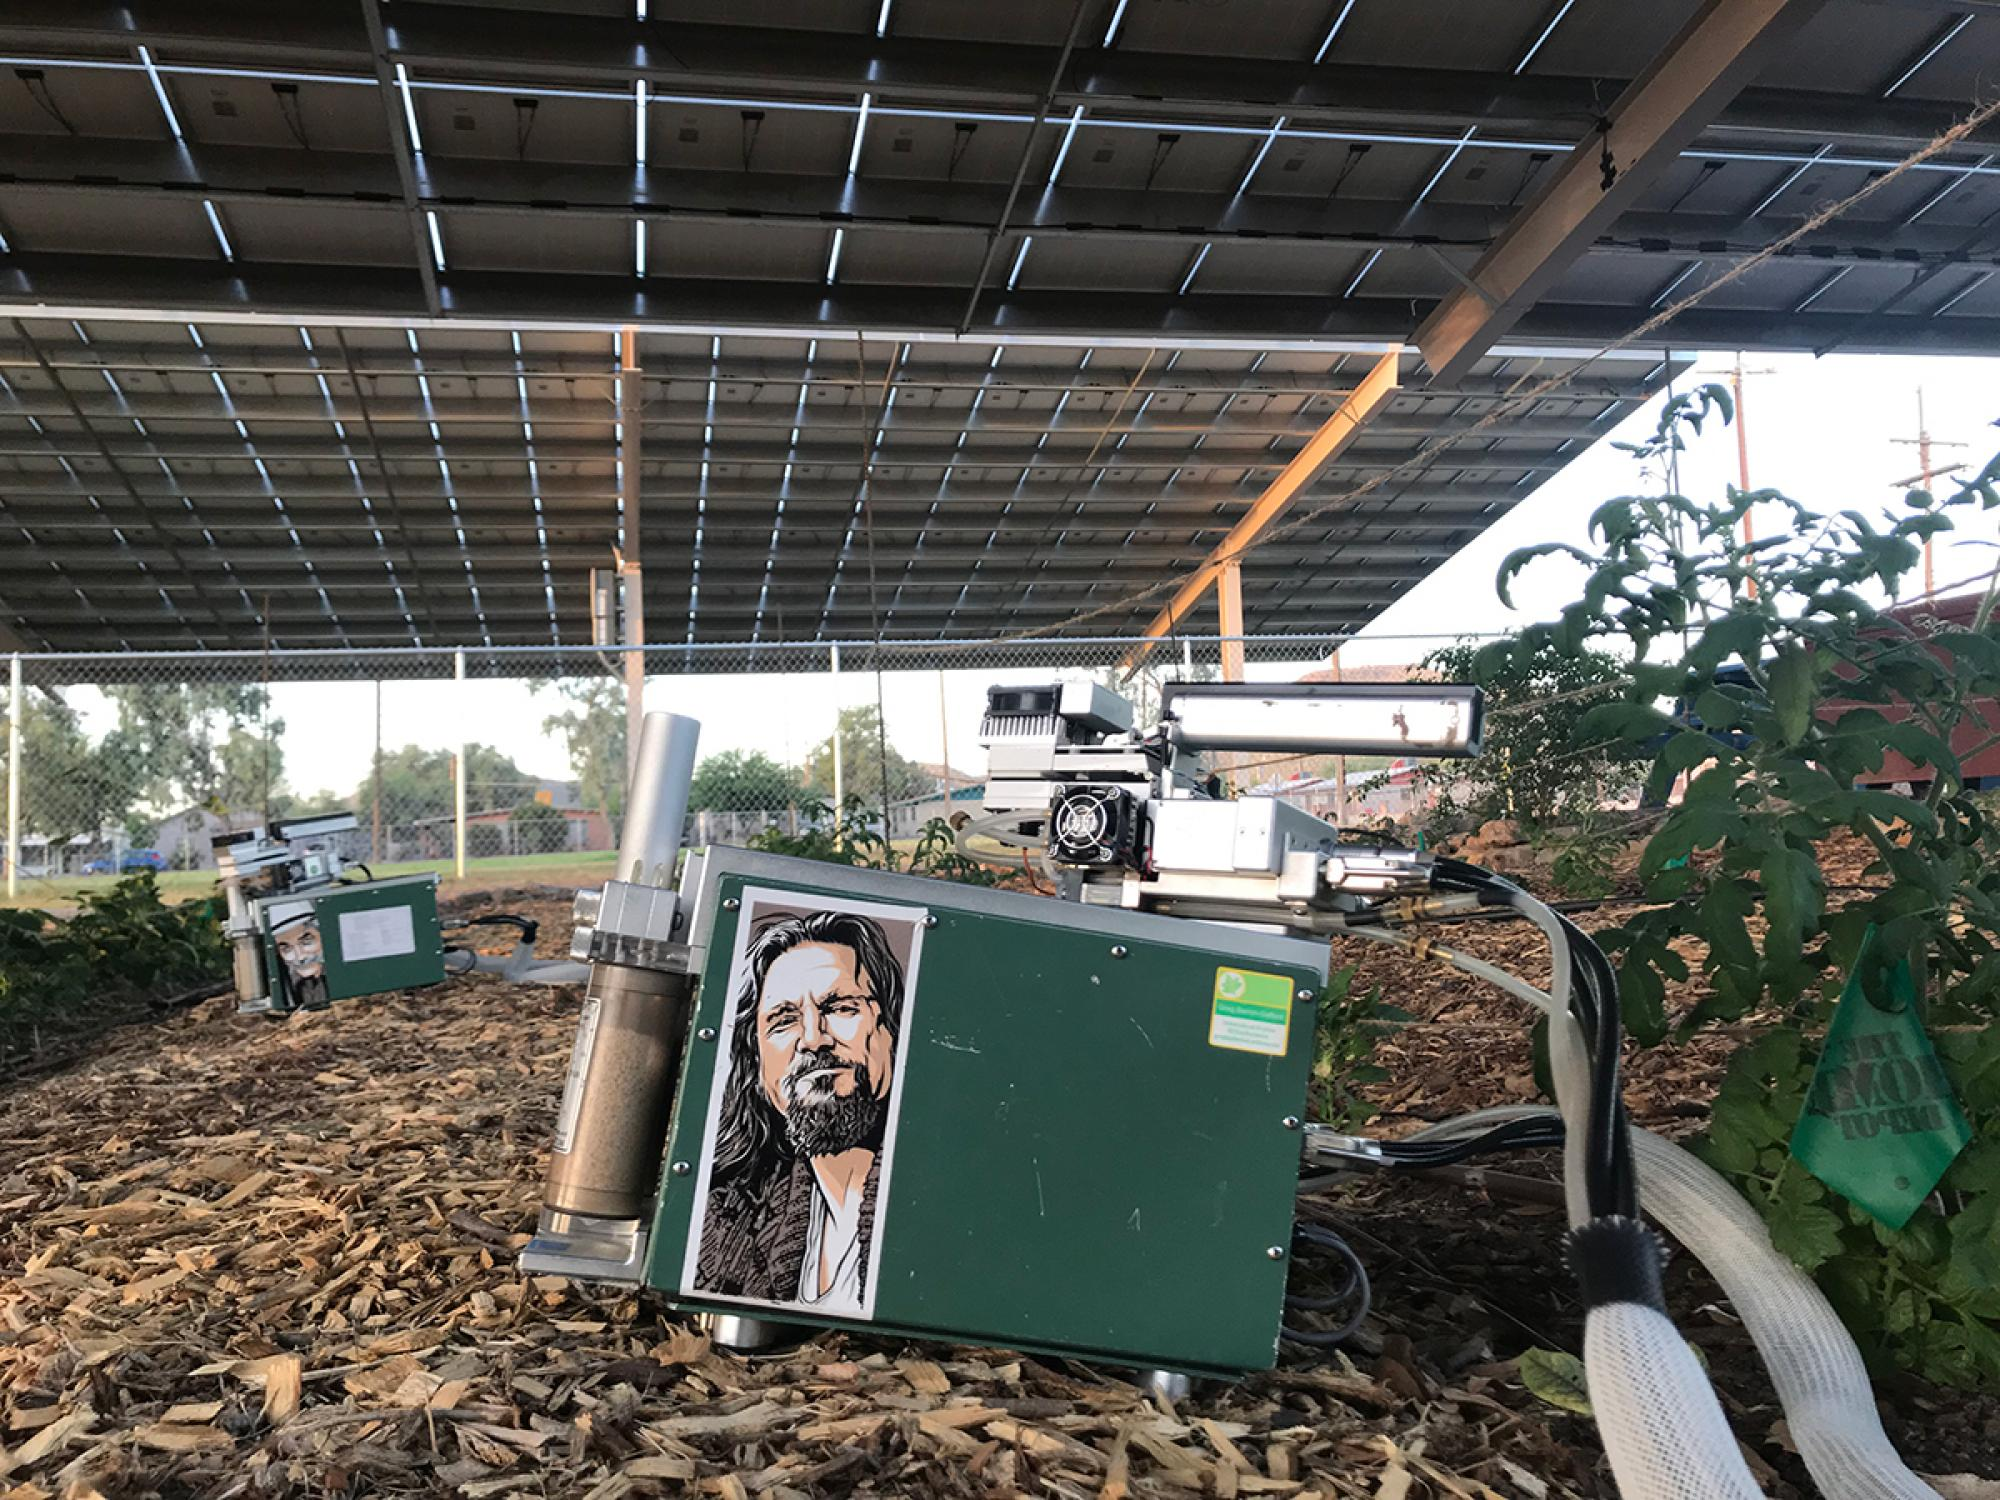 Instruments were used to continually monitor several key factors, including incoming light levels, air temperature, relative humidity, soil surface temperature and soil moisture.